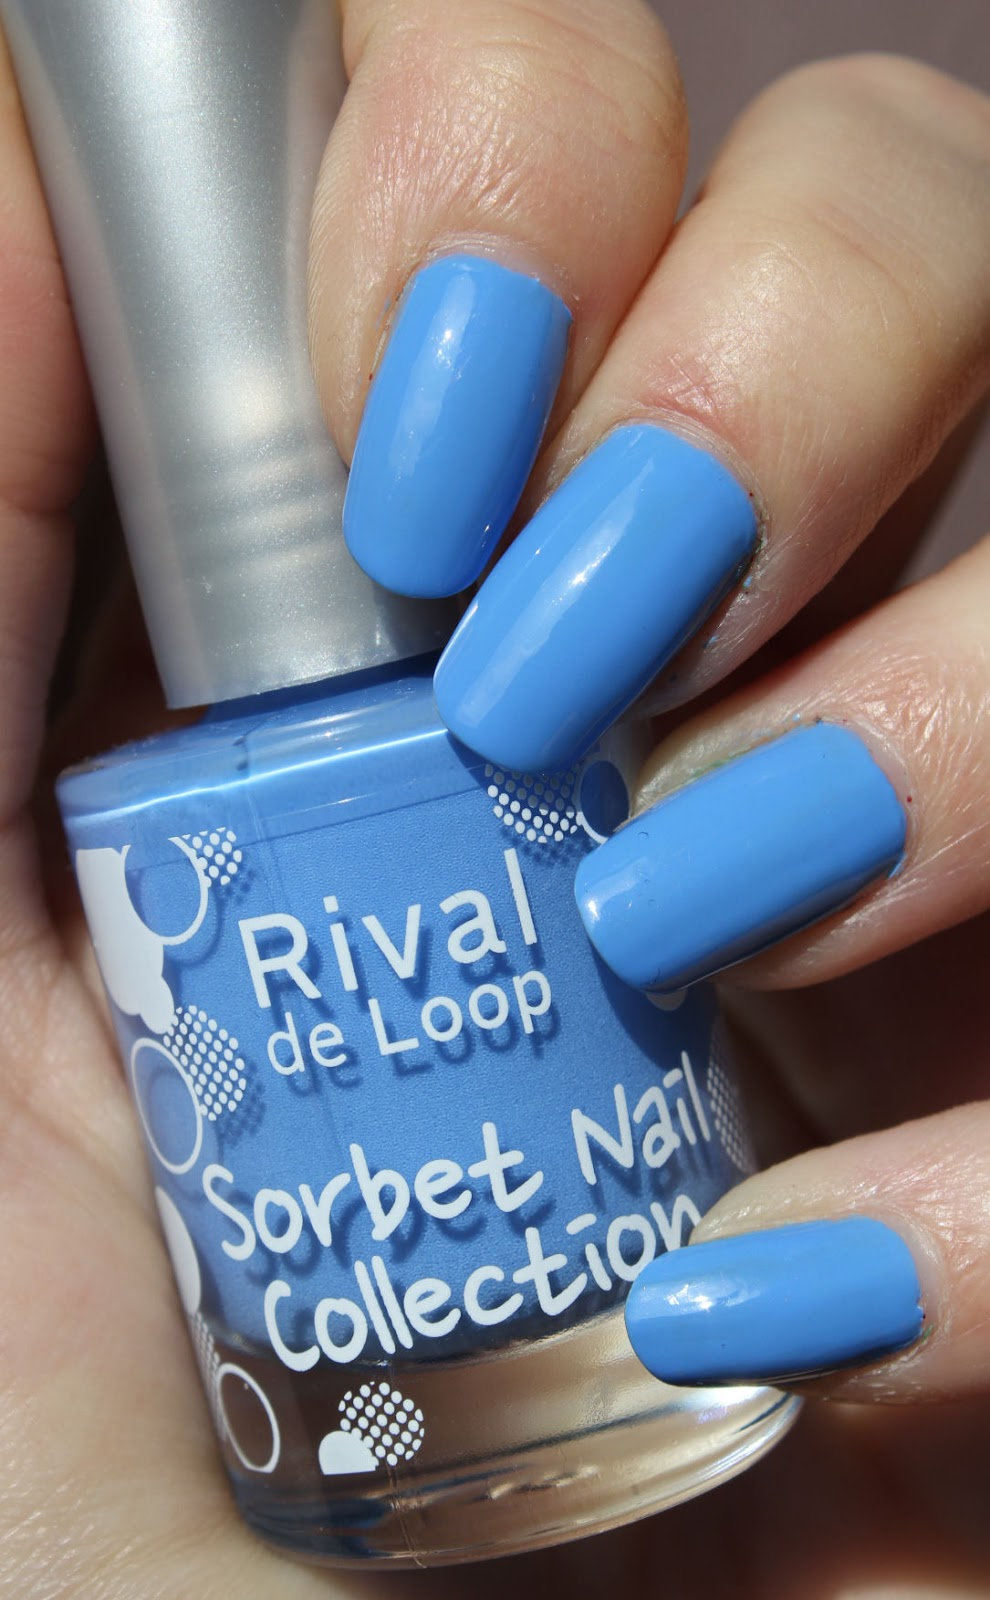 http://lacquediction.blogspot.de/2014/04/rival-de-loop-sorbet-nail-collection-01.html